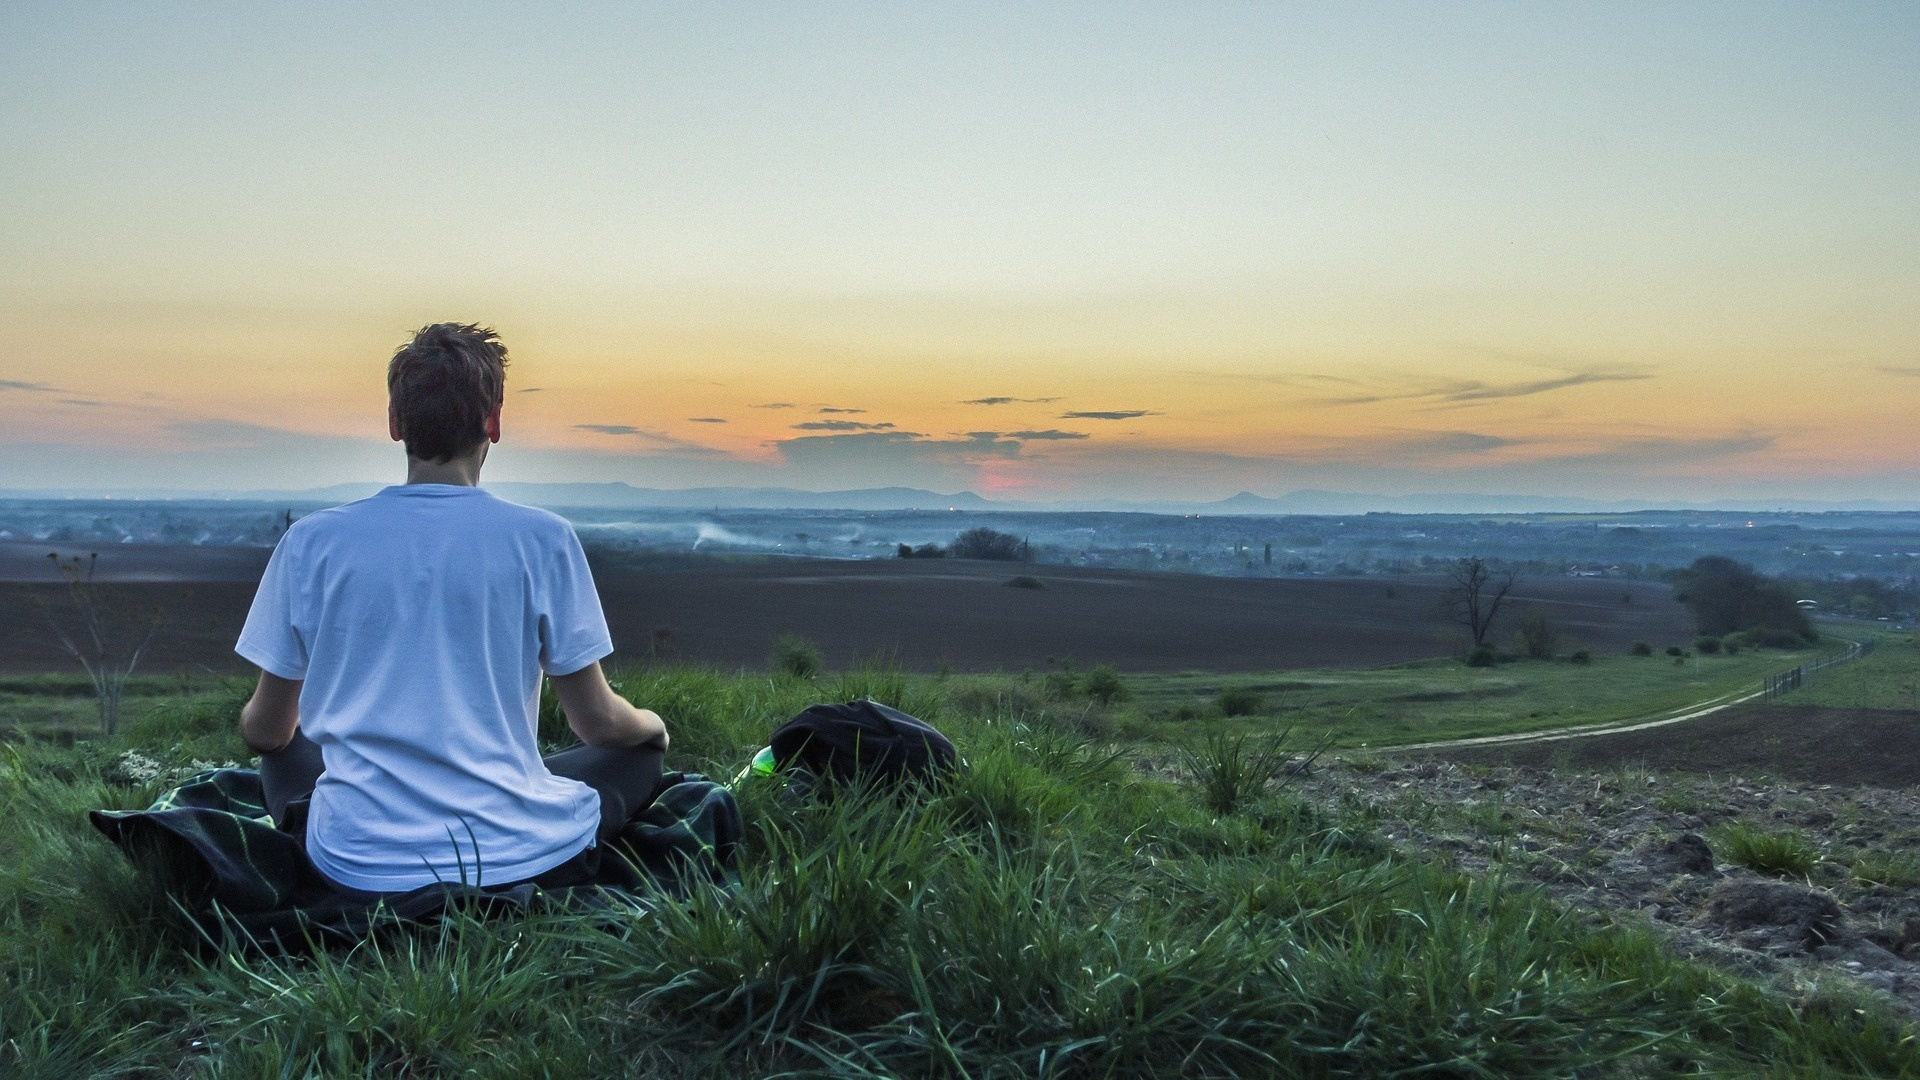 10 common traits of self-actualized people